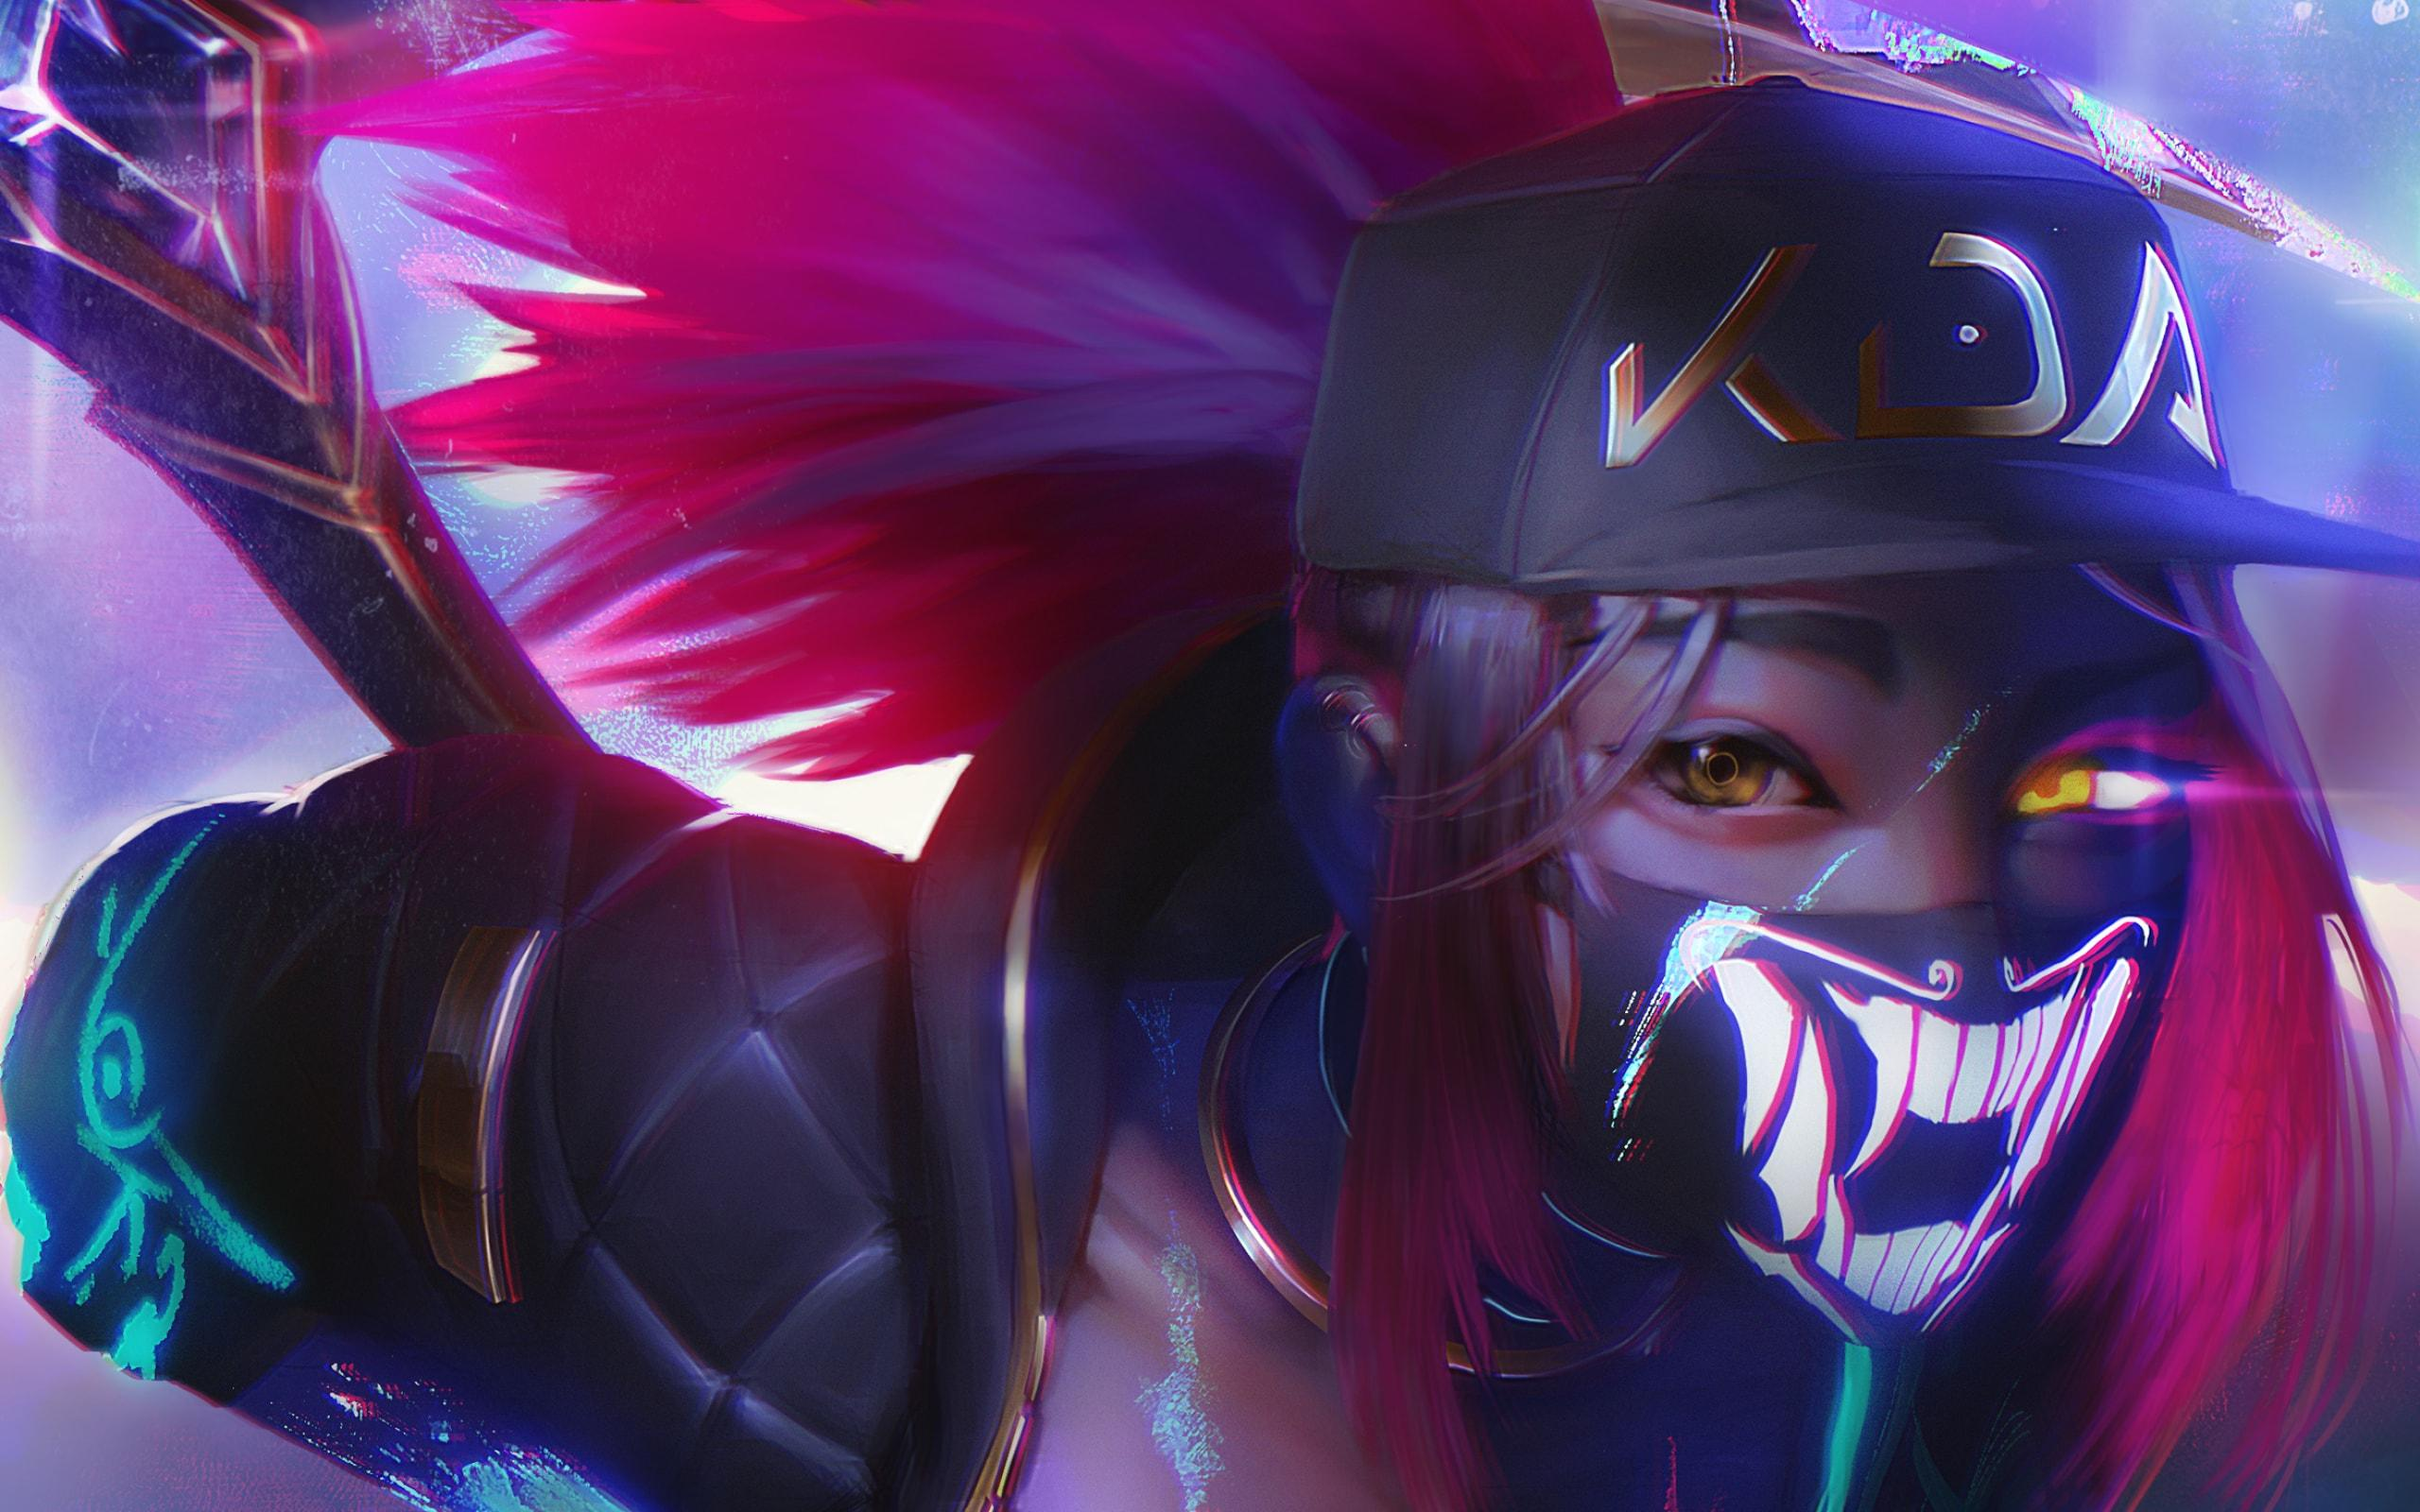 Wallpapers Akali, League Of Legends, Pink Hair Desktop Picture